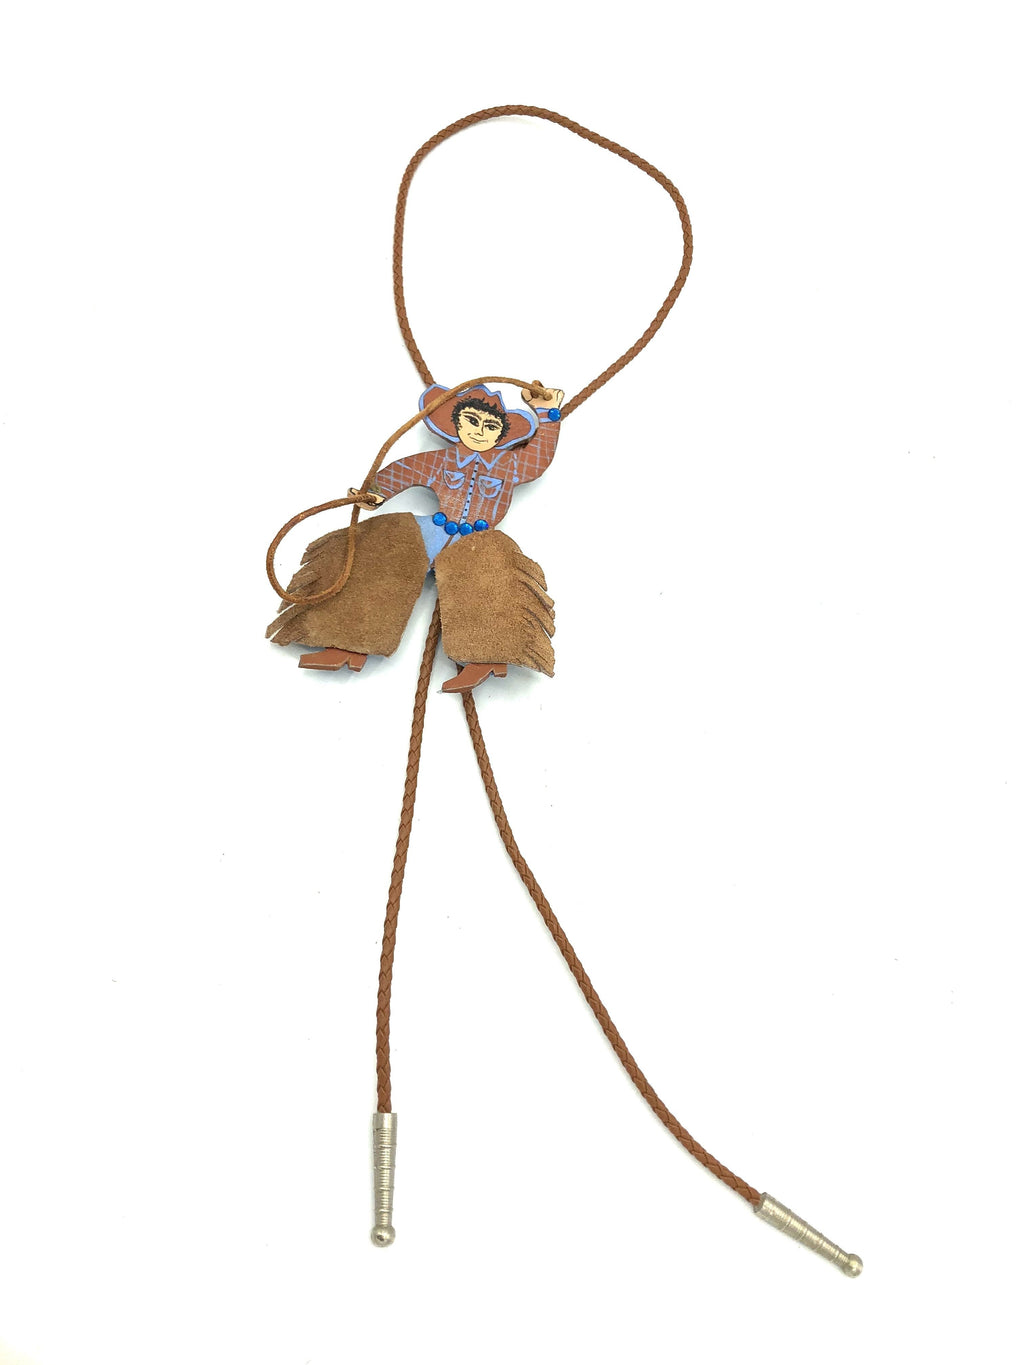 90s Artisanal Leather Cowboy Bolo Tie FRONT 1 of 4